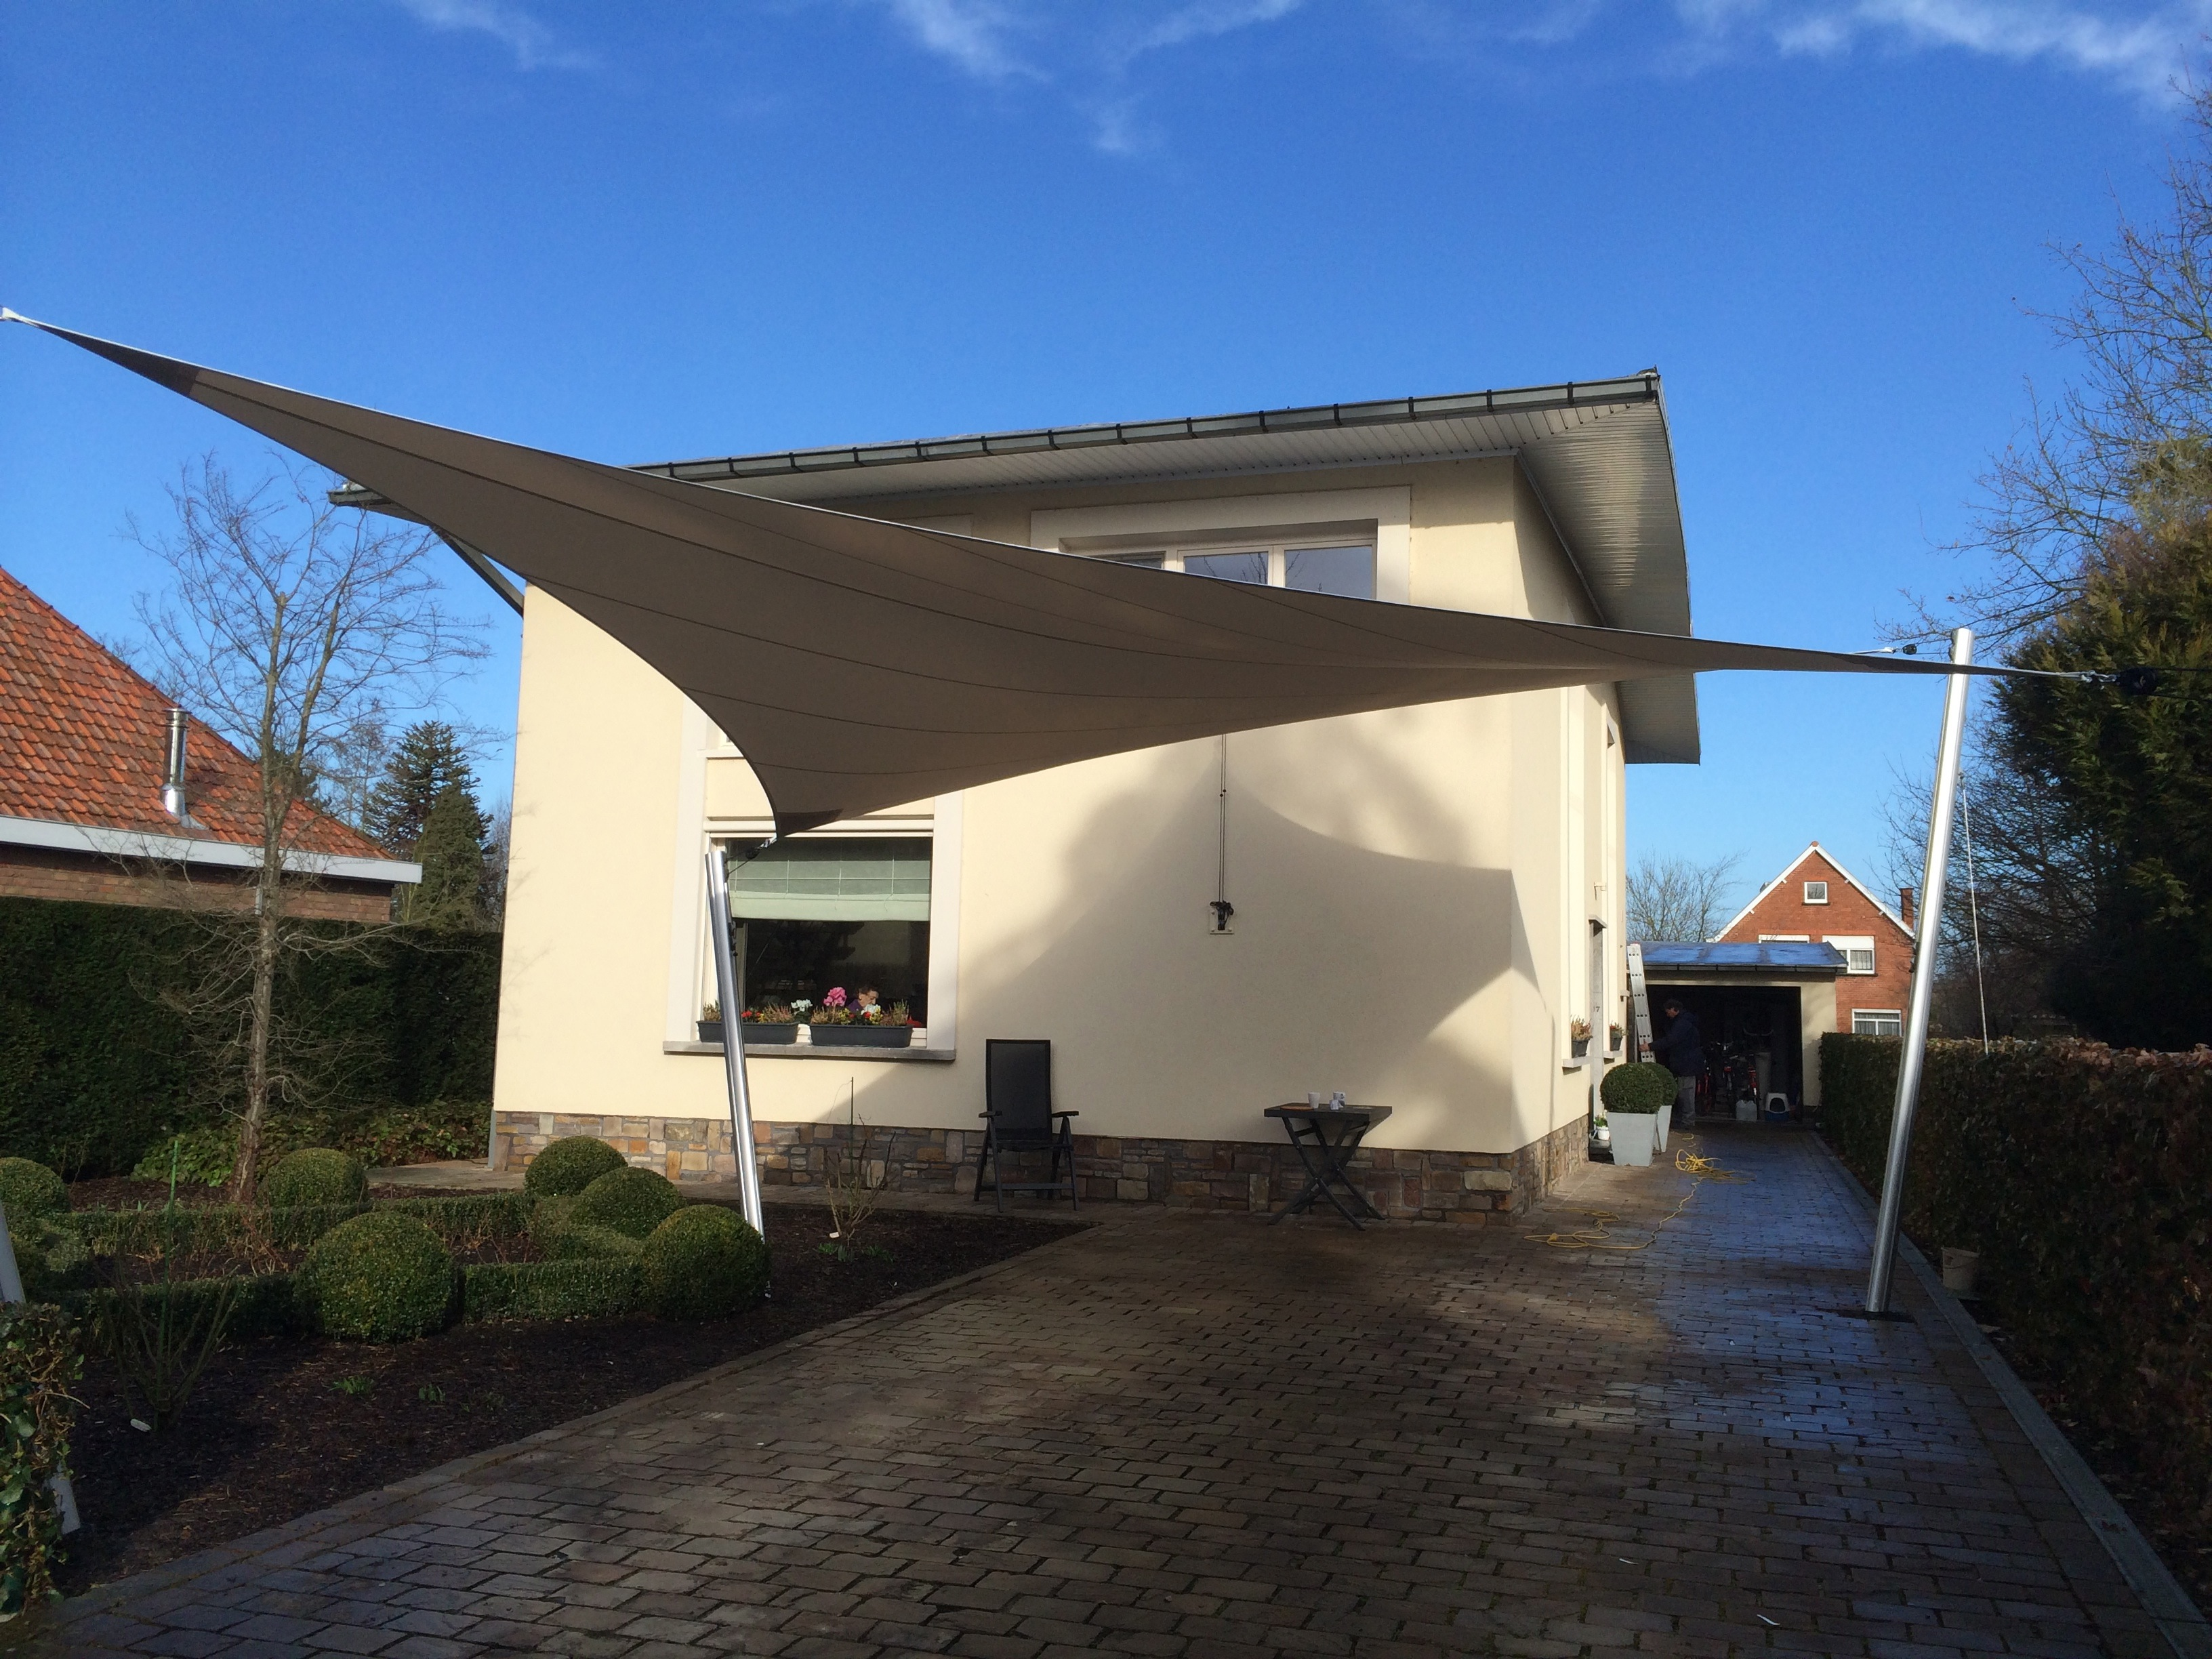 carport-overkapping-met-zeildoek-in-drongen